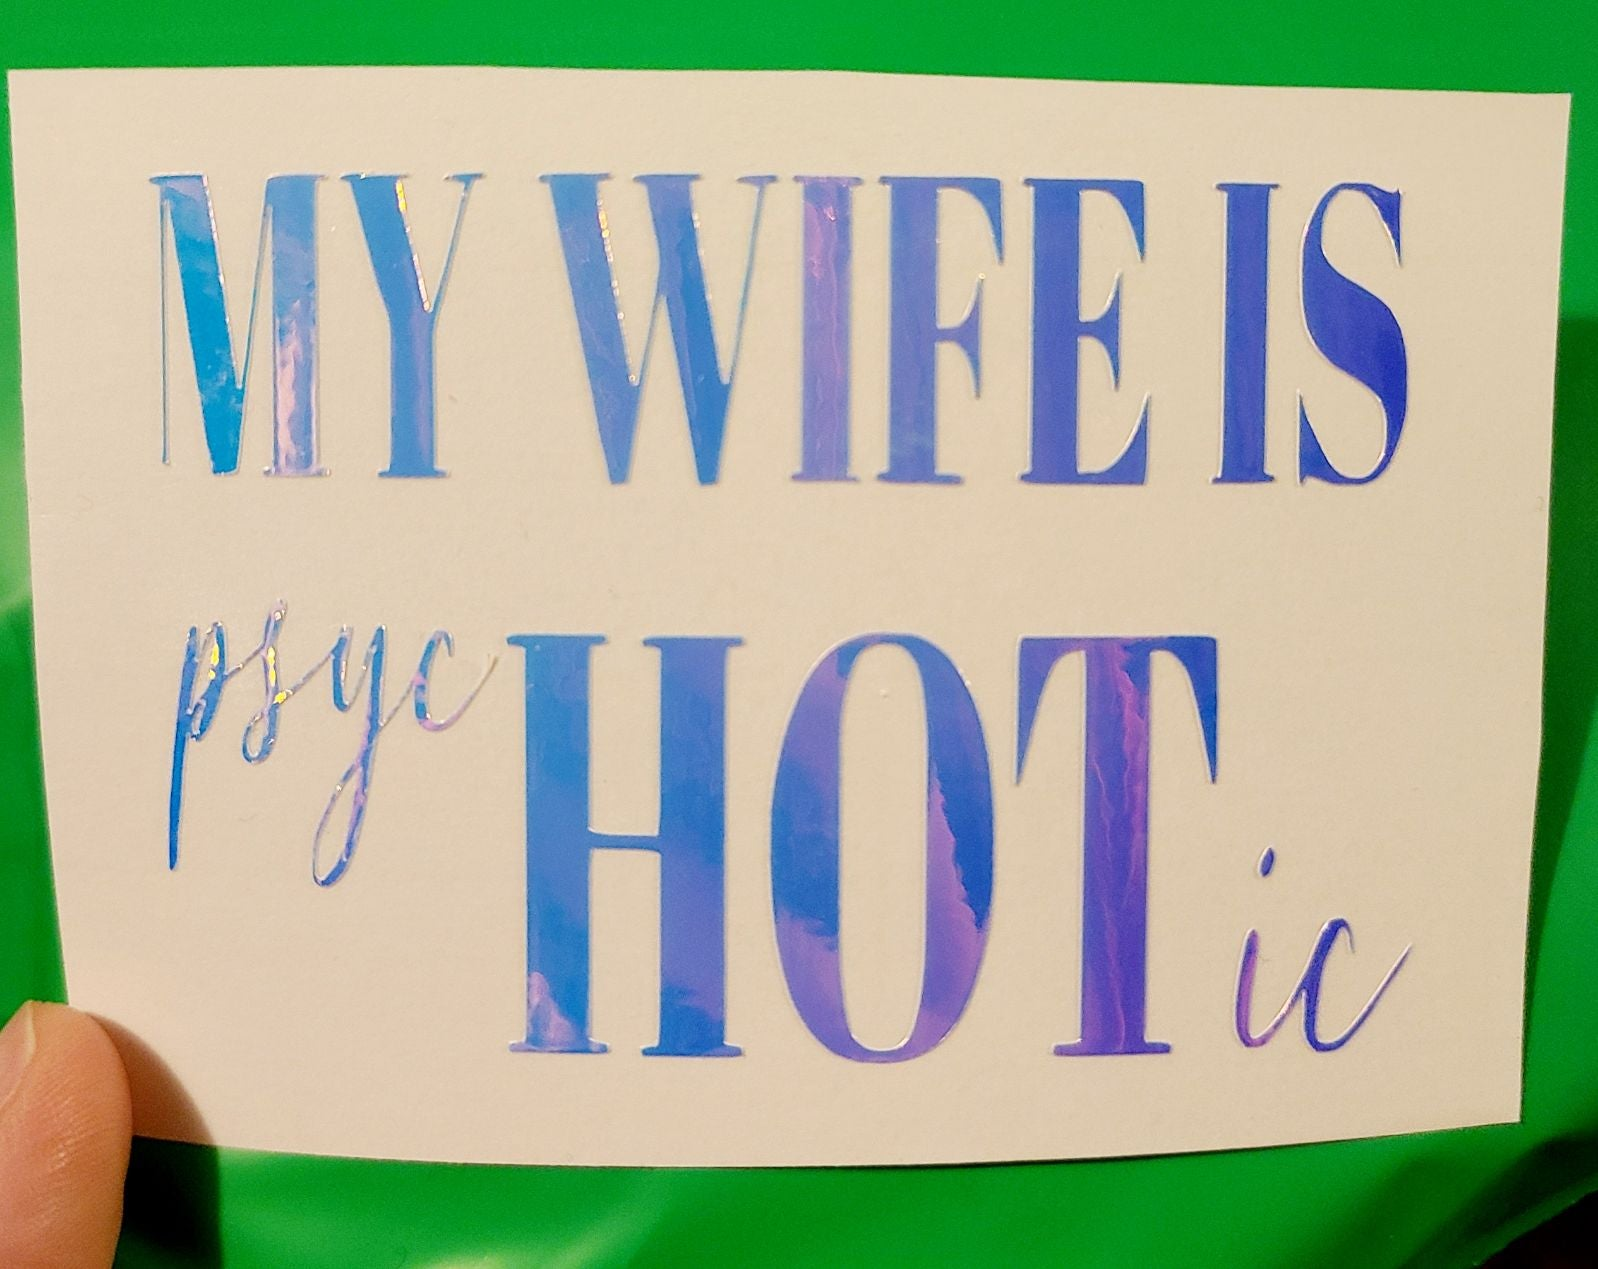 Wife car decal funny psychotic